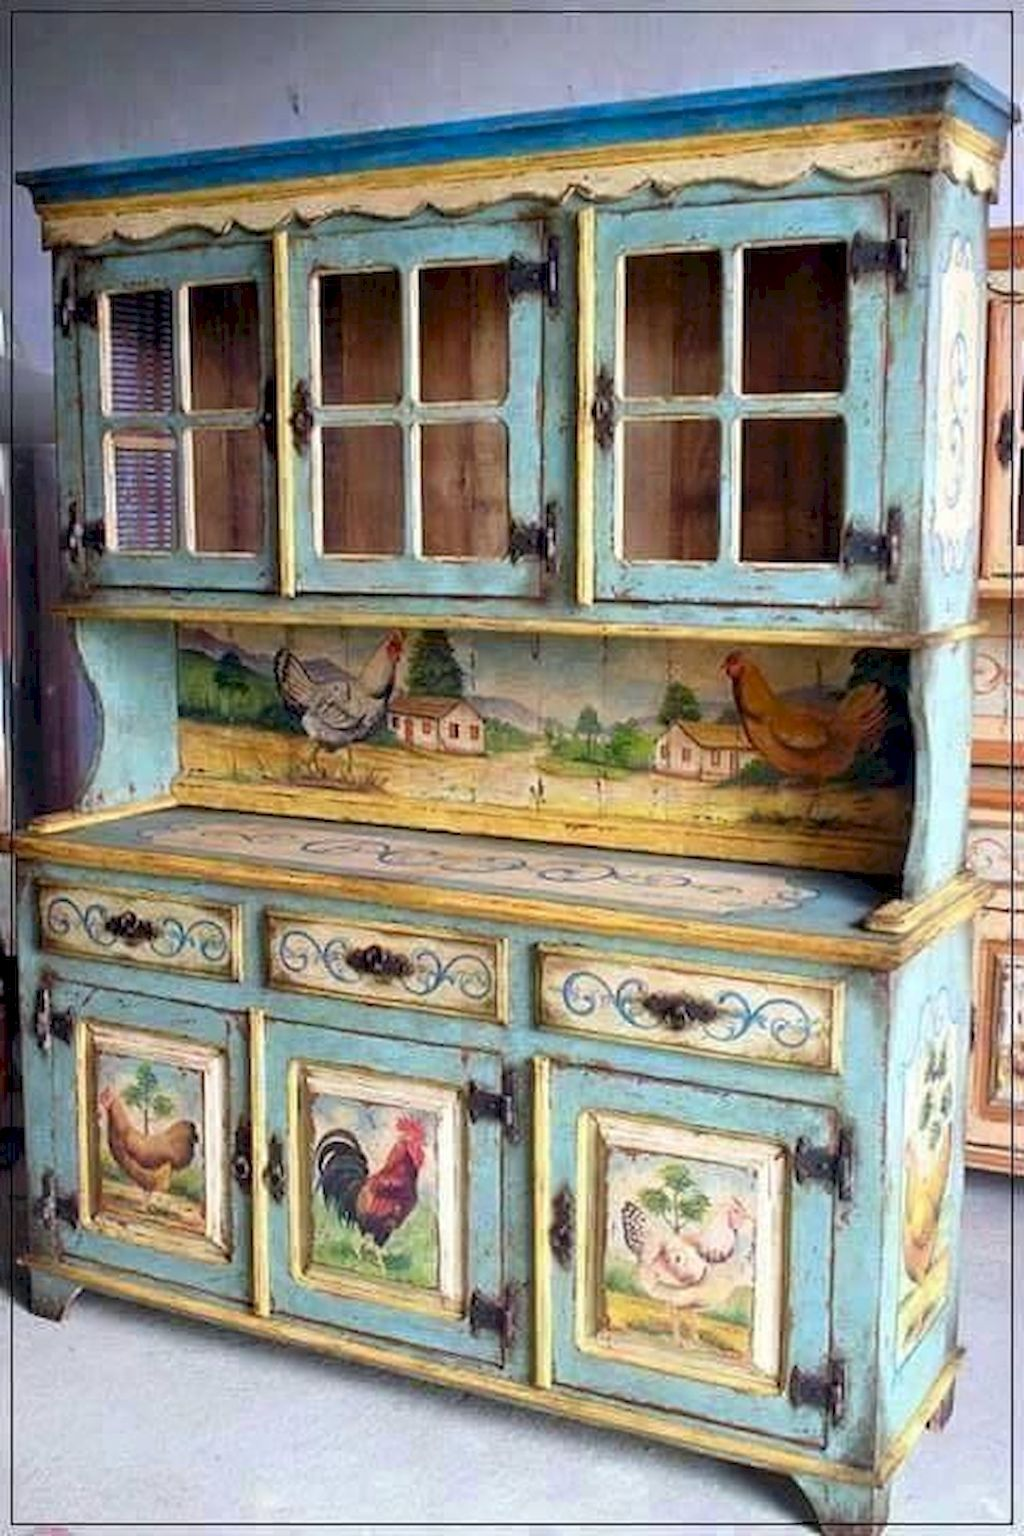 Awesome 60 Beautiful French Country Kitchen Decor Ideas Https Wholiving Com 60 Beautiful French C Painted Furniture Decoupage Furniture Country Style Kitchen